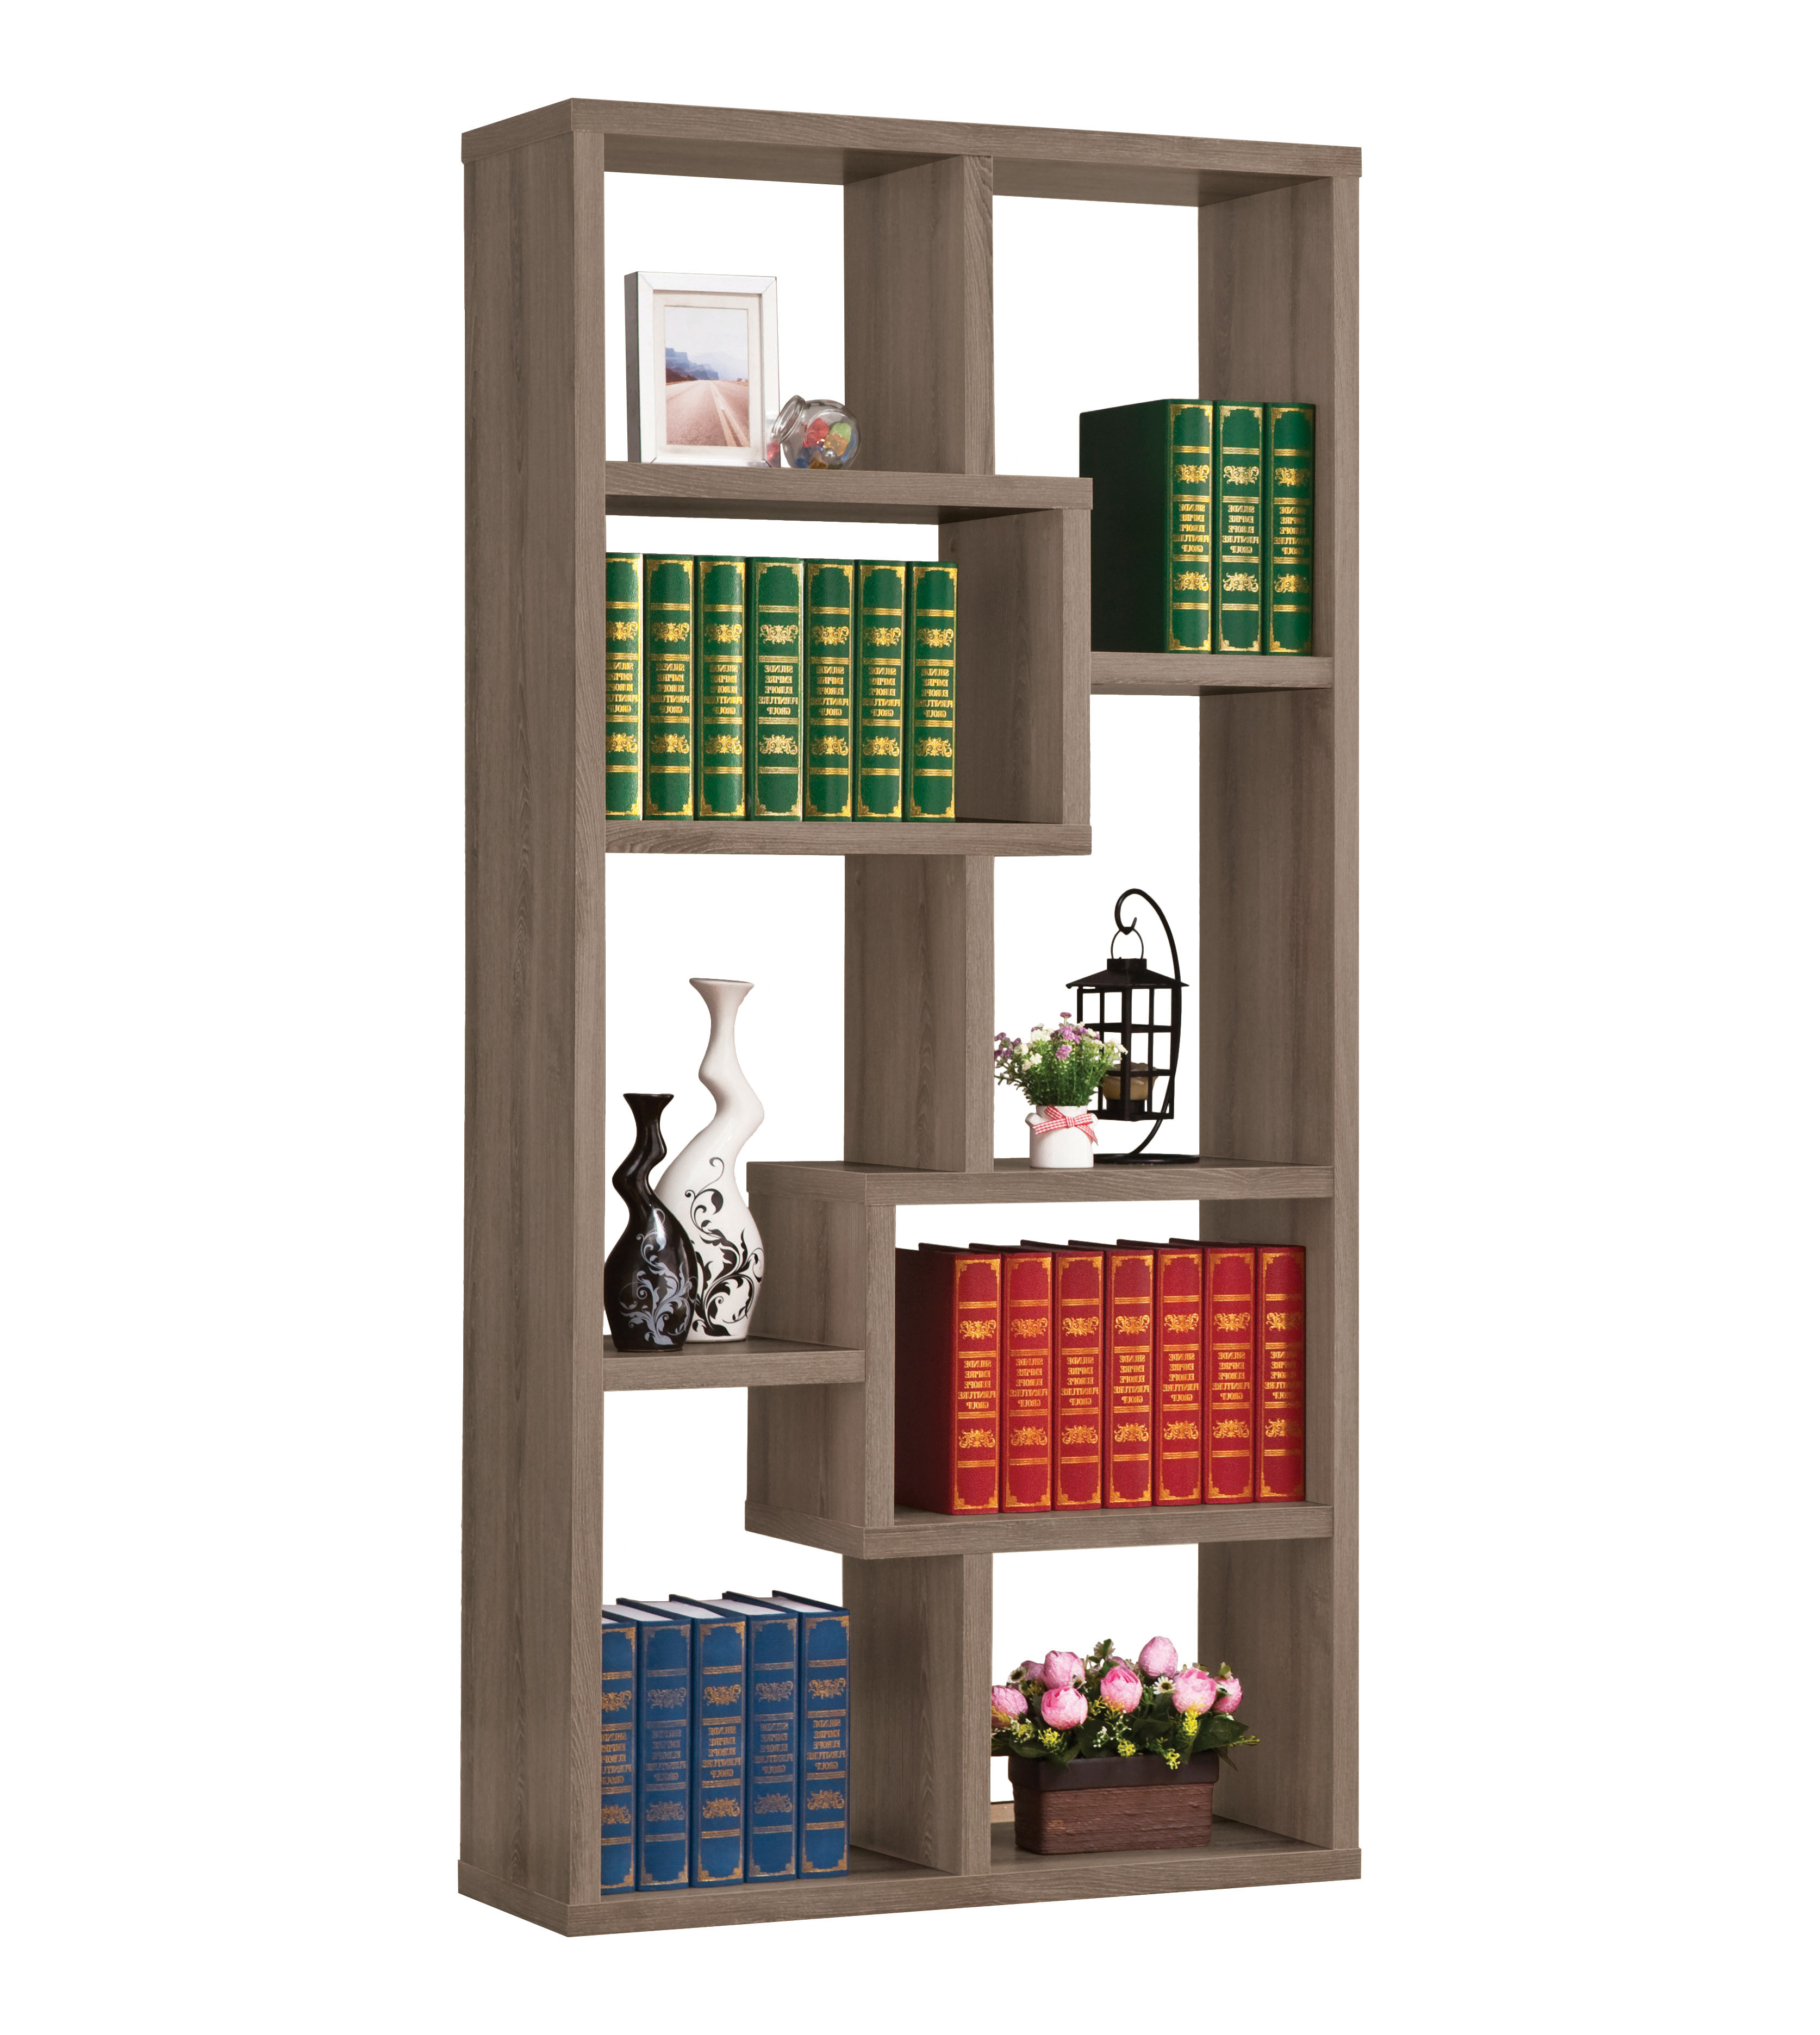 Widely Used Skaggs Geometric Bookcase Pertaining To Ansley Geometric Bookcases (View 20 of 20)